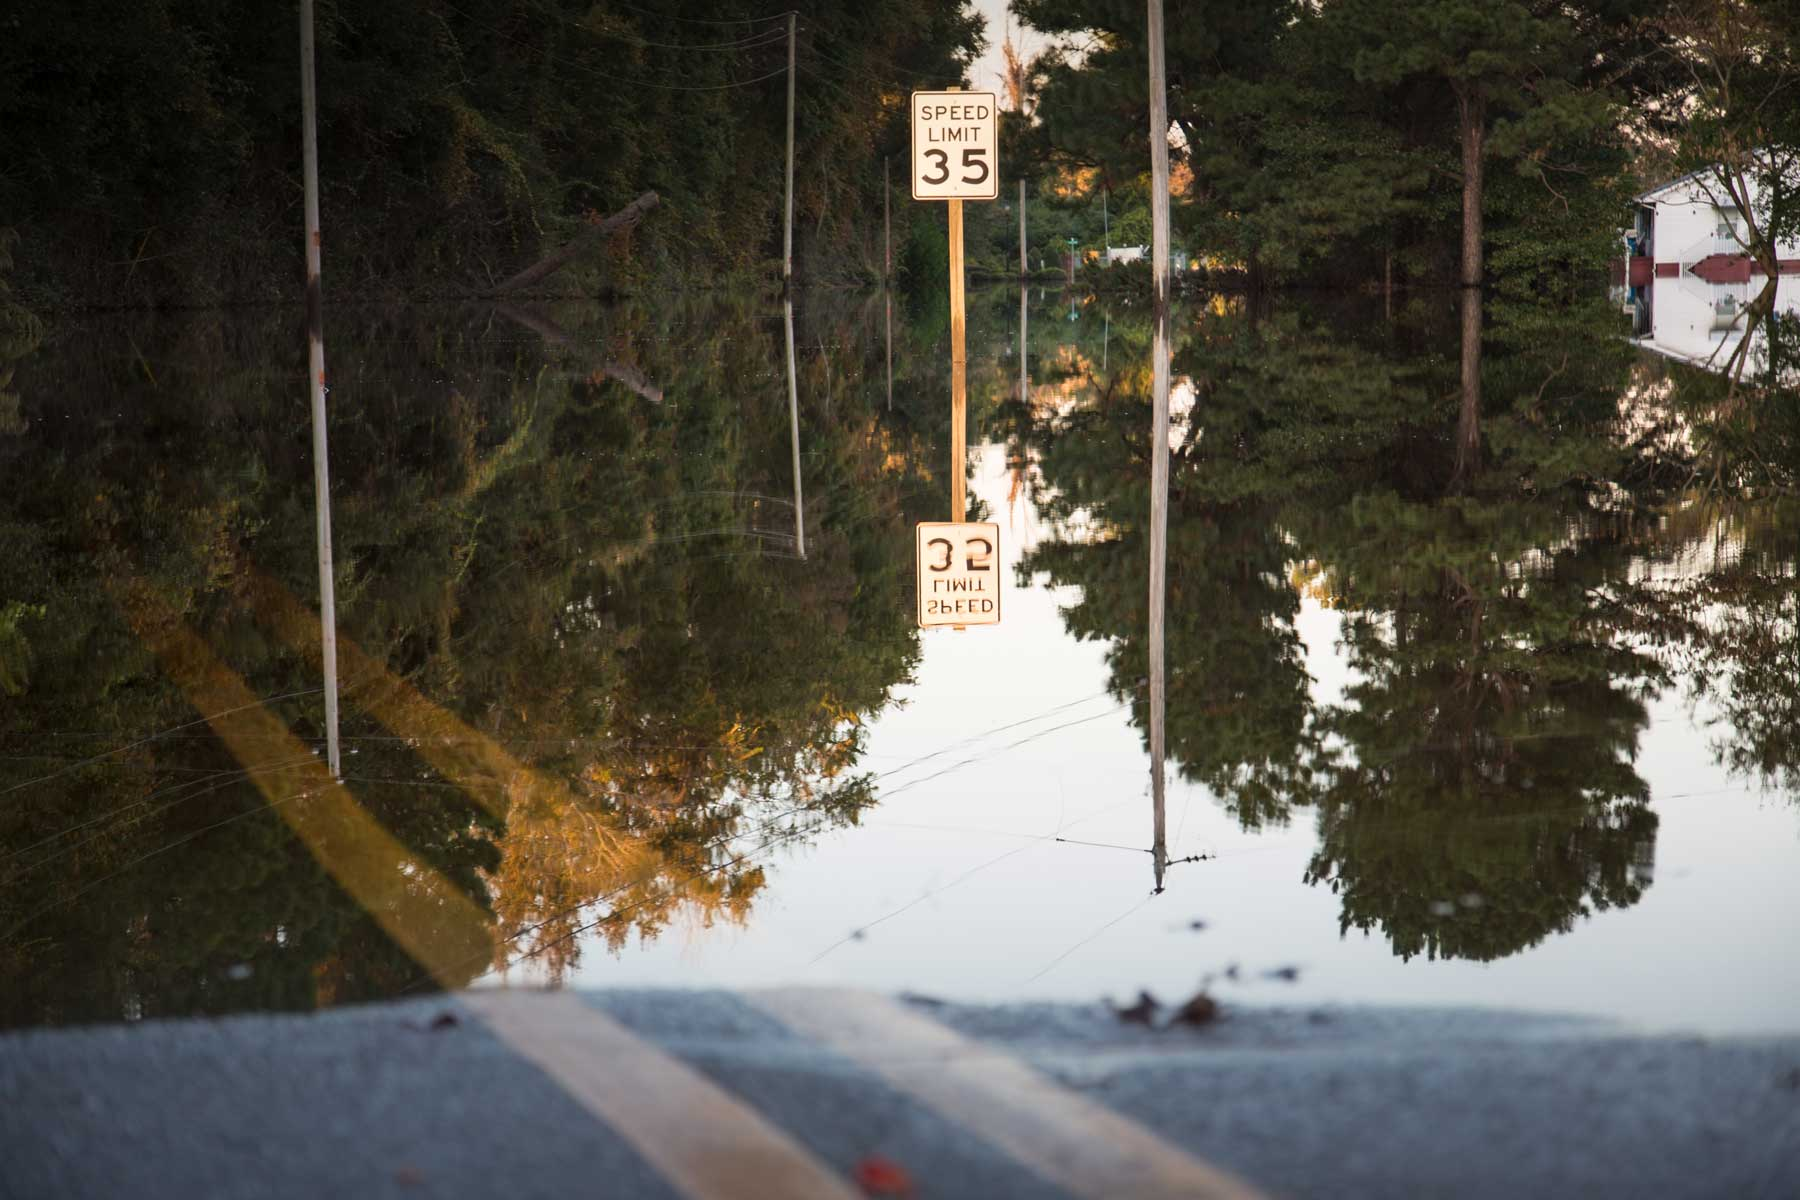 A speed limit sign is reflected over a flooded road in Kinston, N.C. (Julie Dermansky)